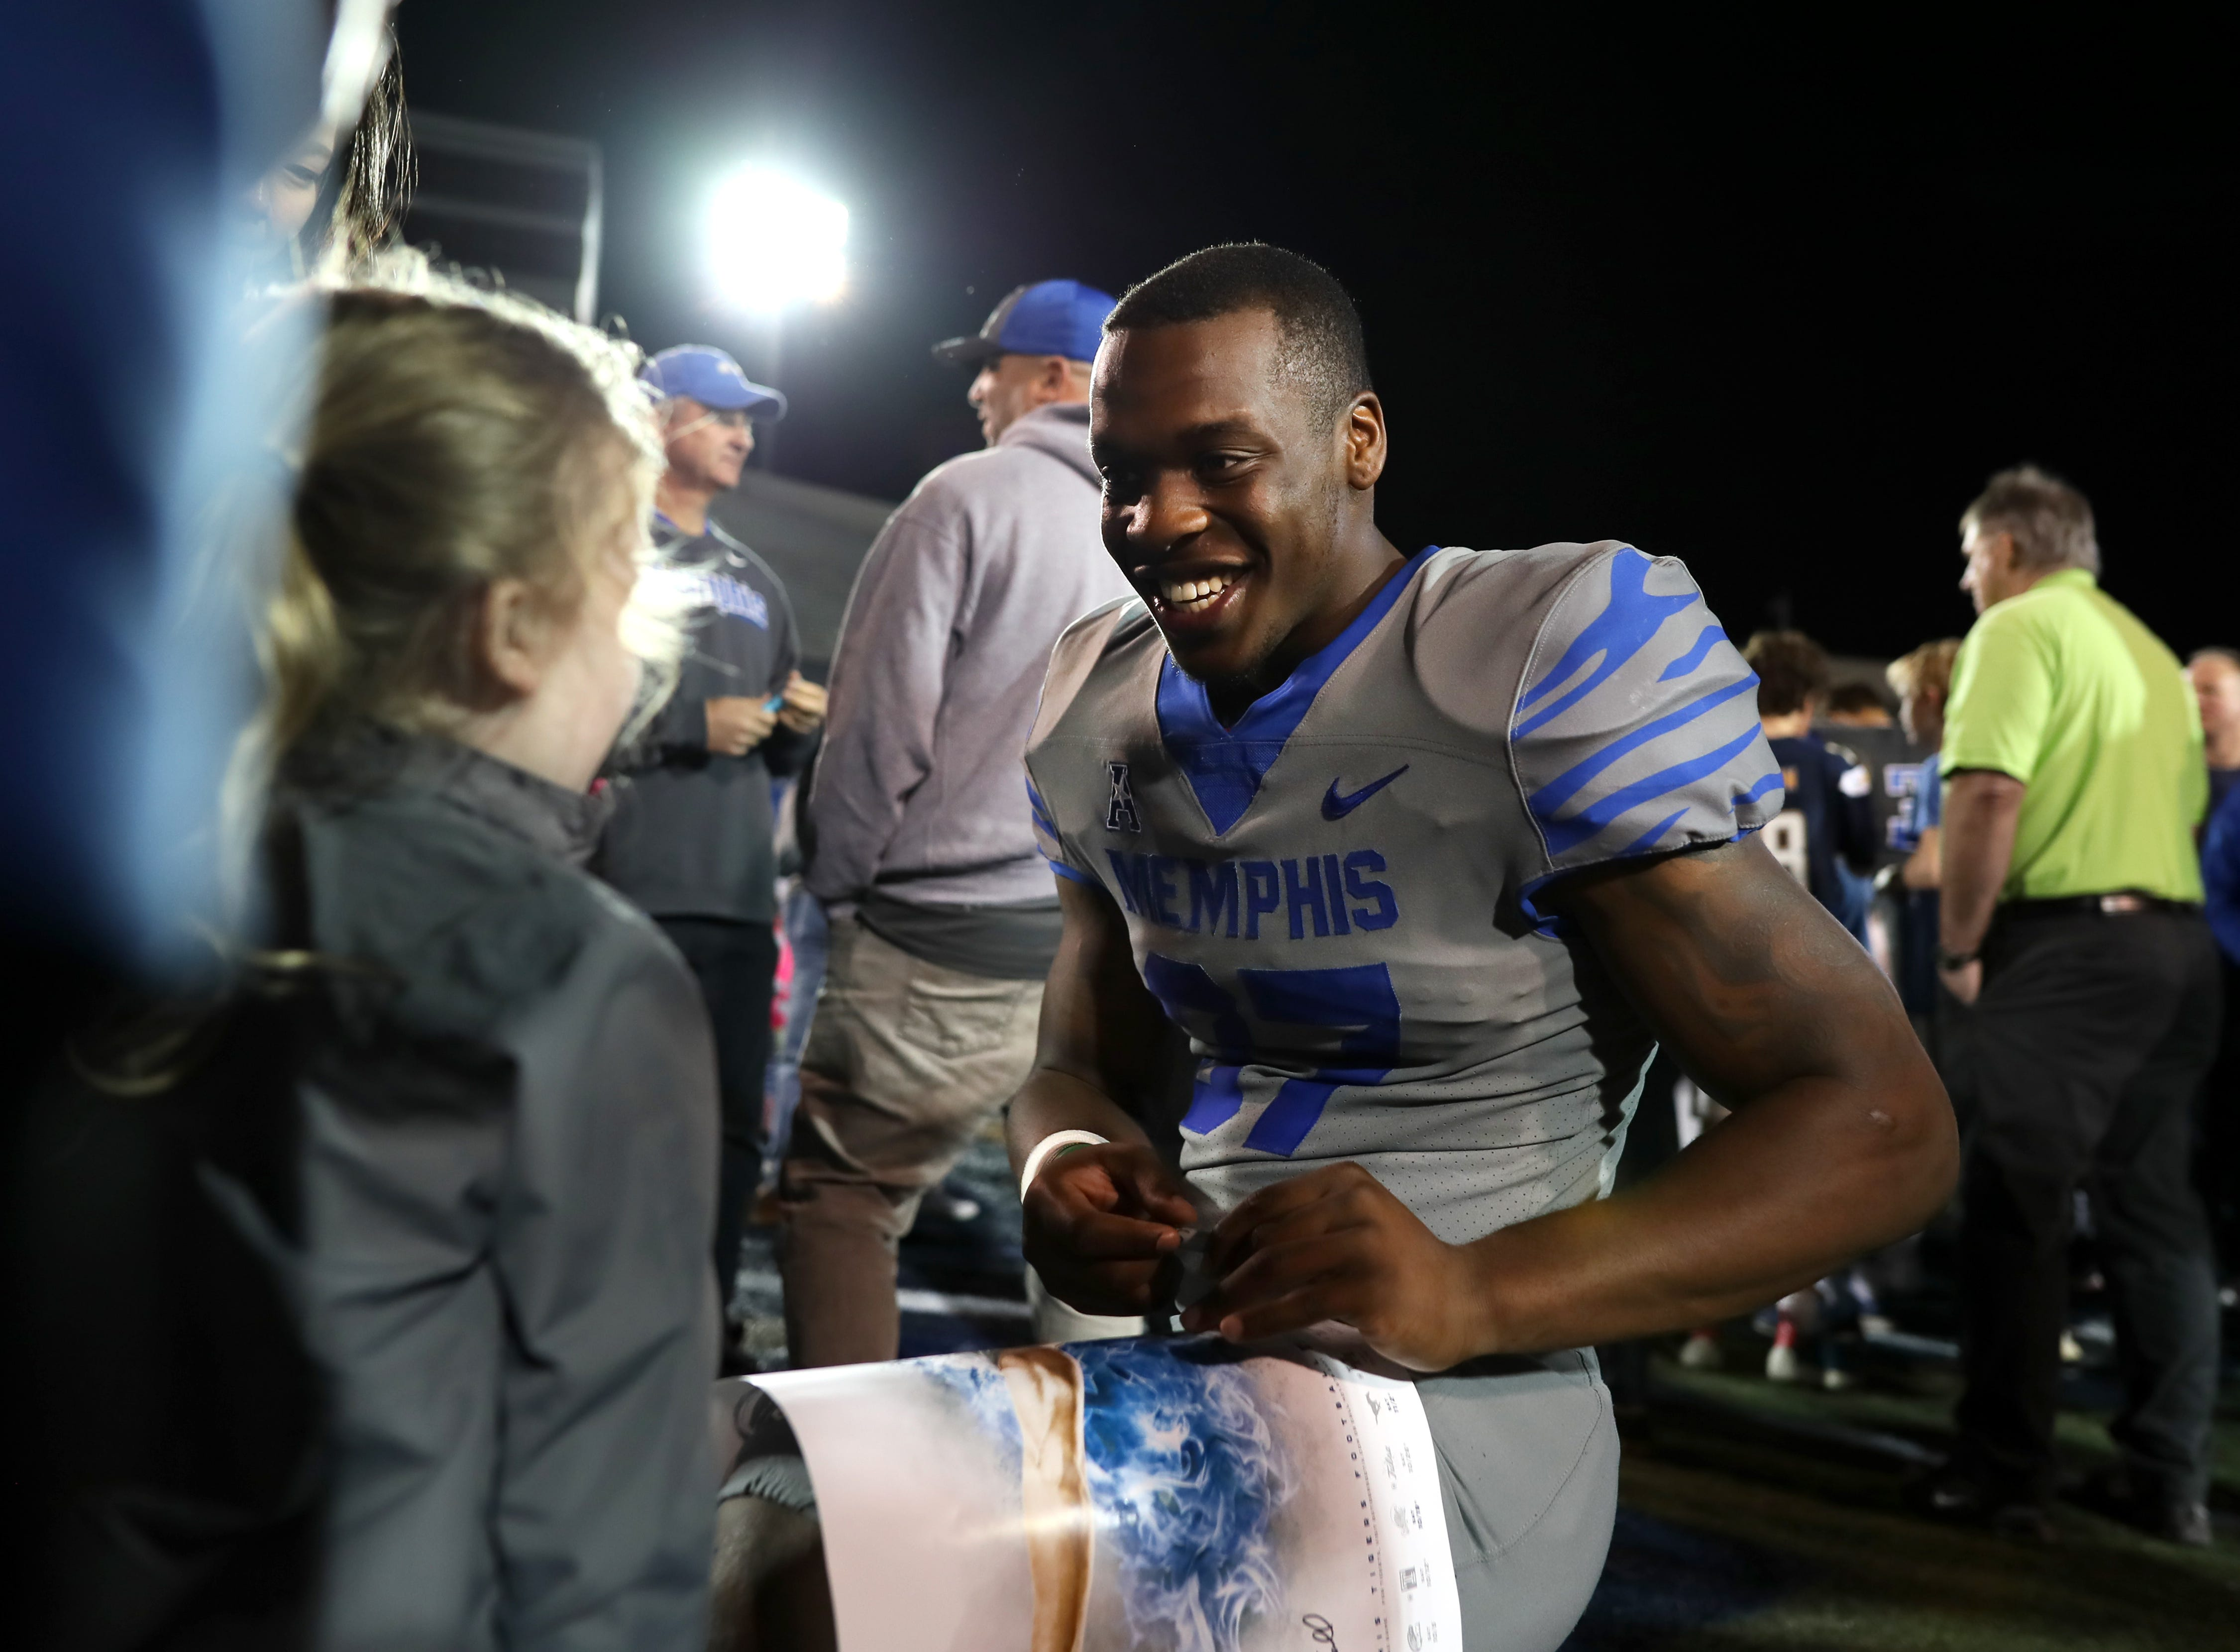 Memphis Tigers Jaylon Allen signs autographs for fans after their Friday Night Stripes spring game at Liberty Bowl Memorial Stadium on Friday, April 12, 2019.